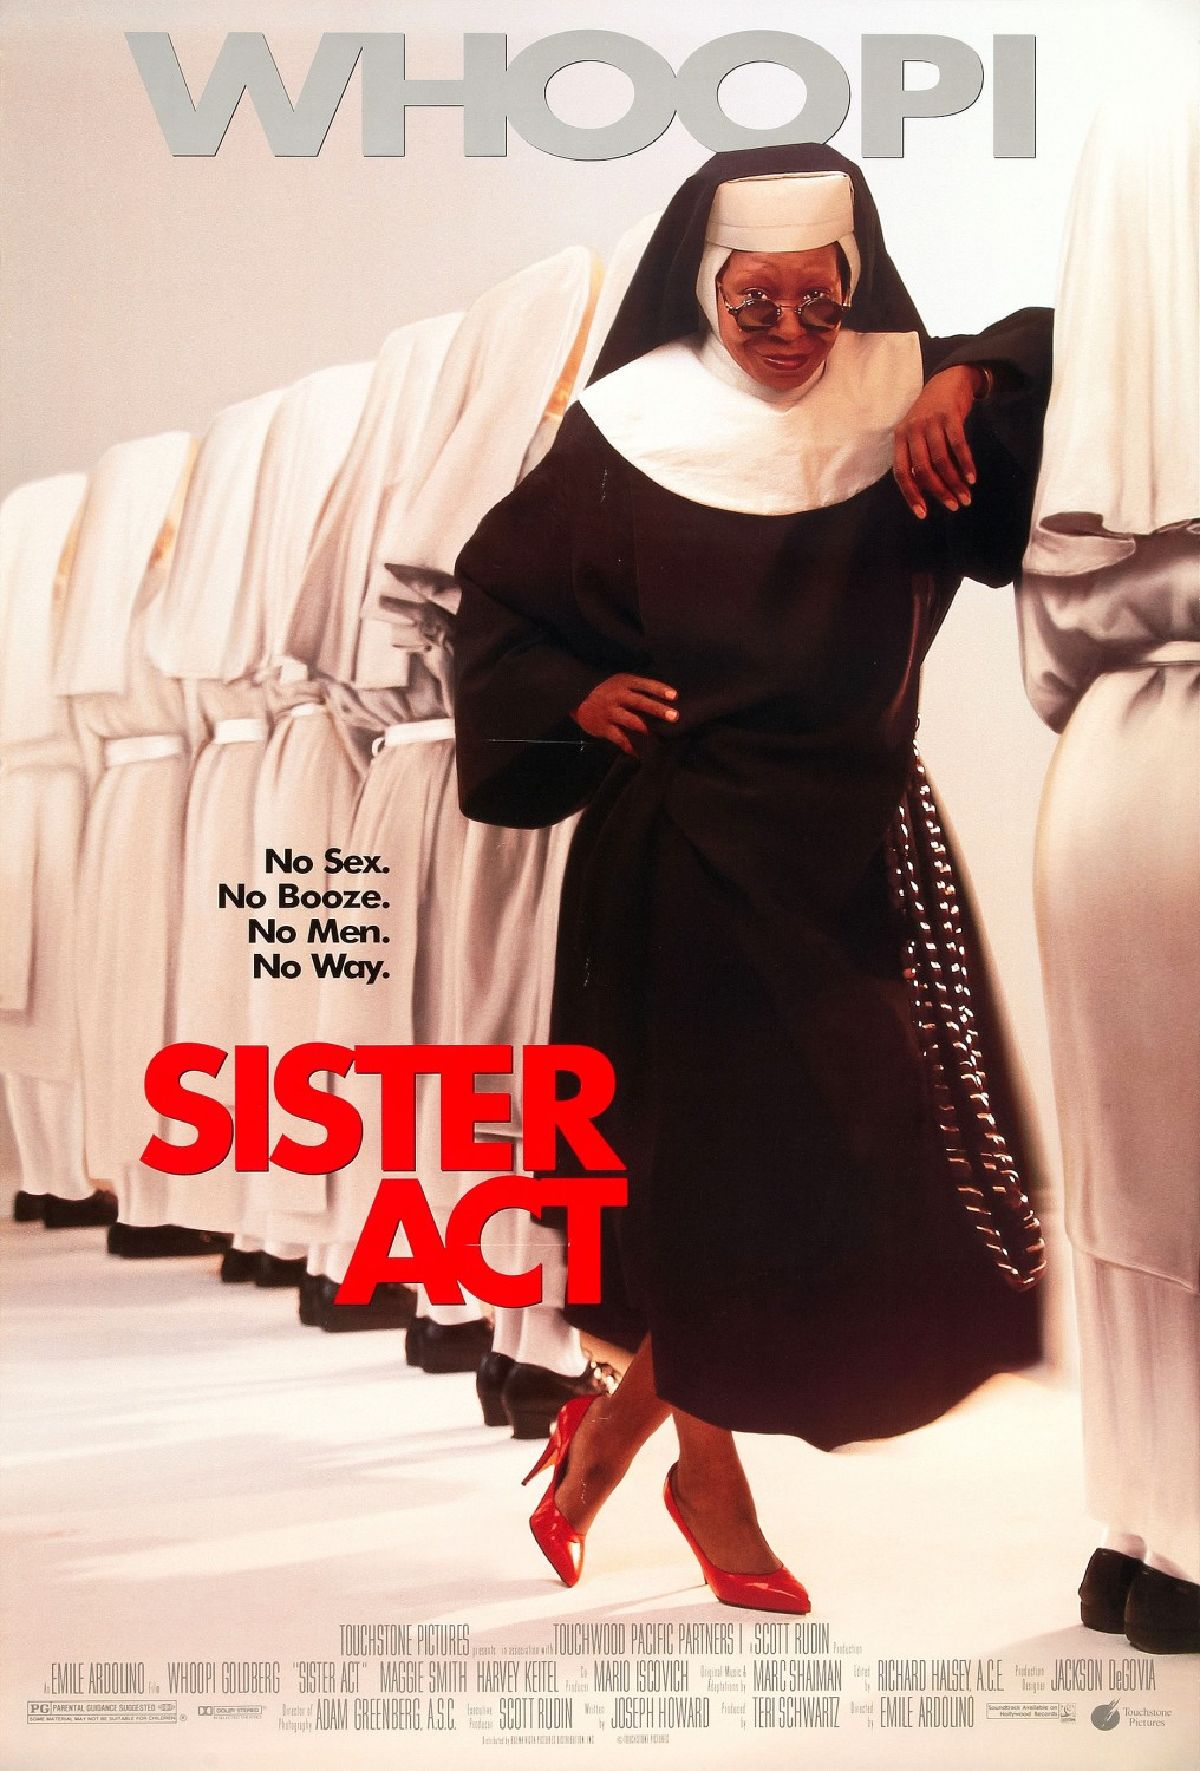 'Sister Act' movie poster